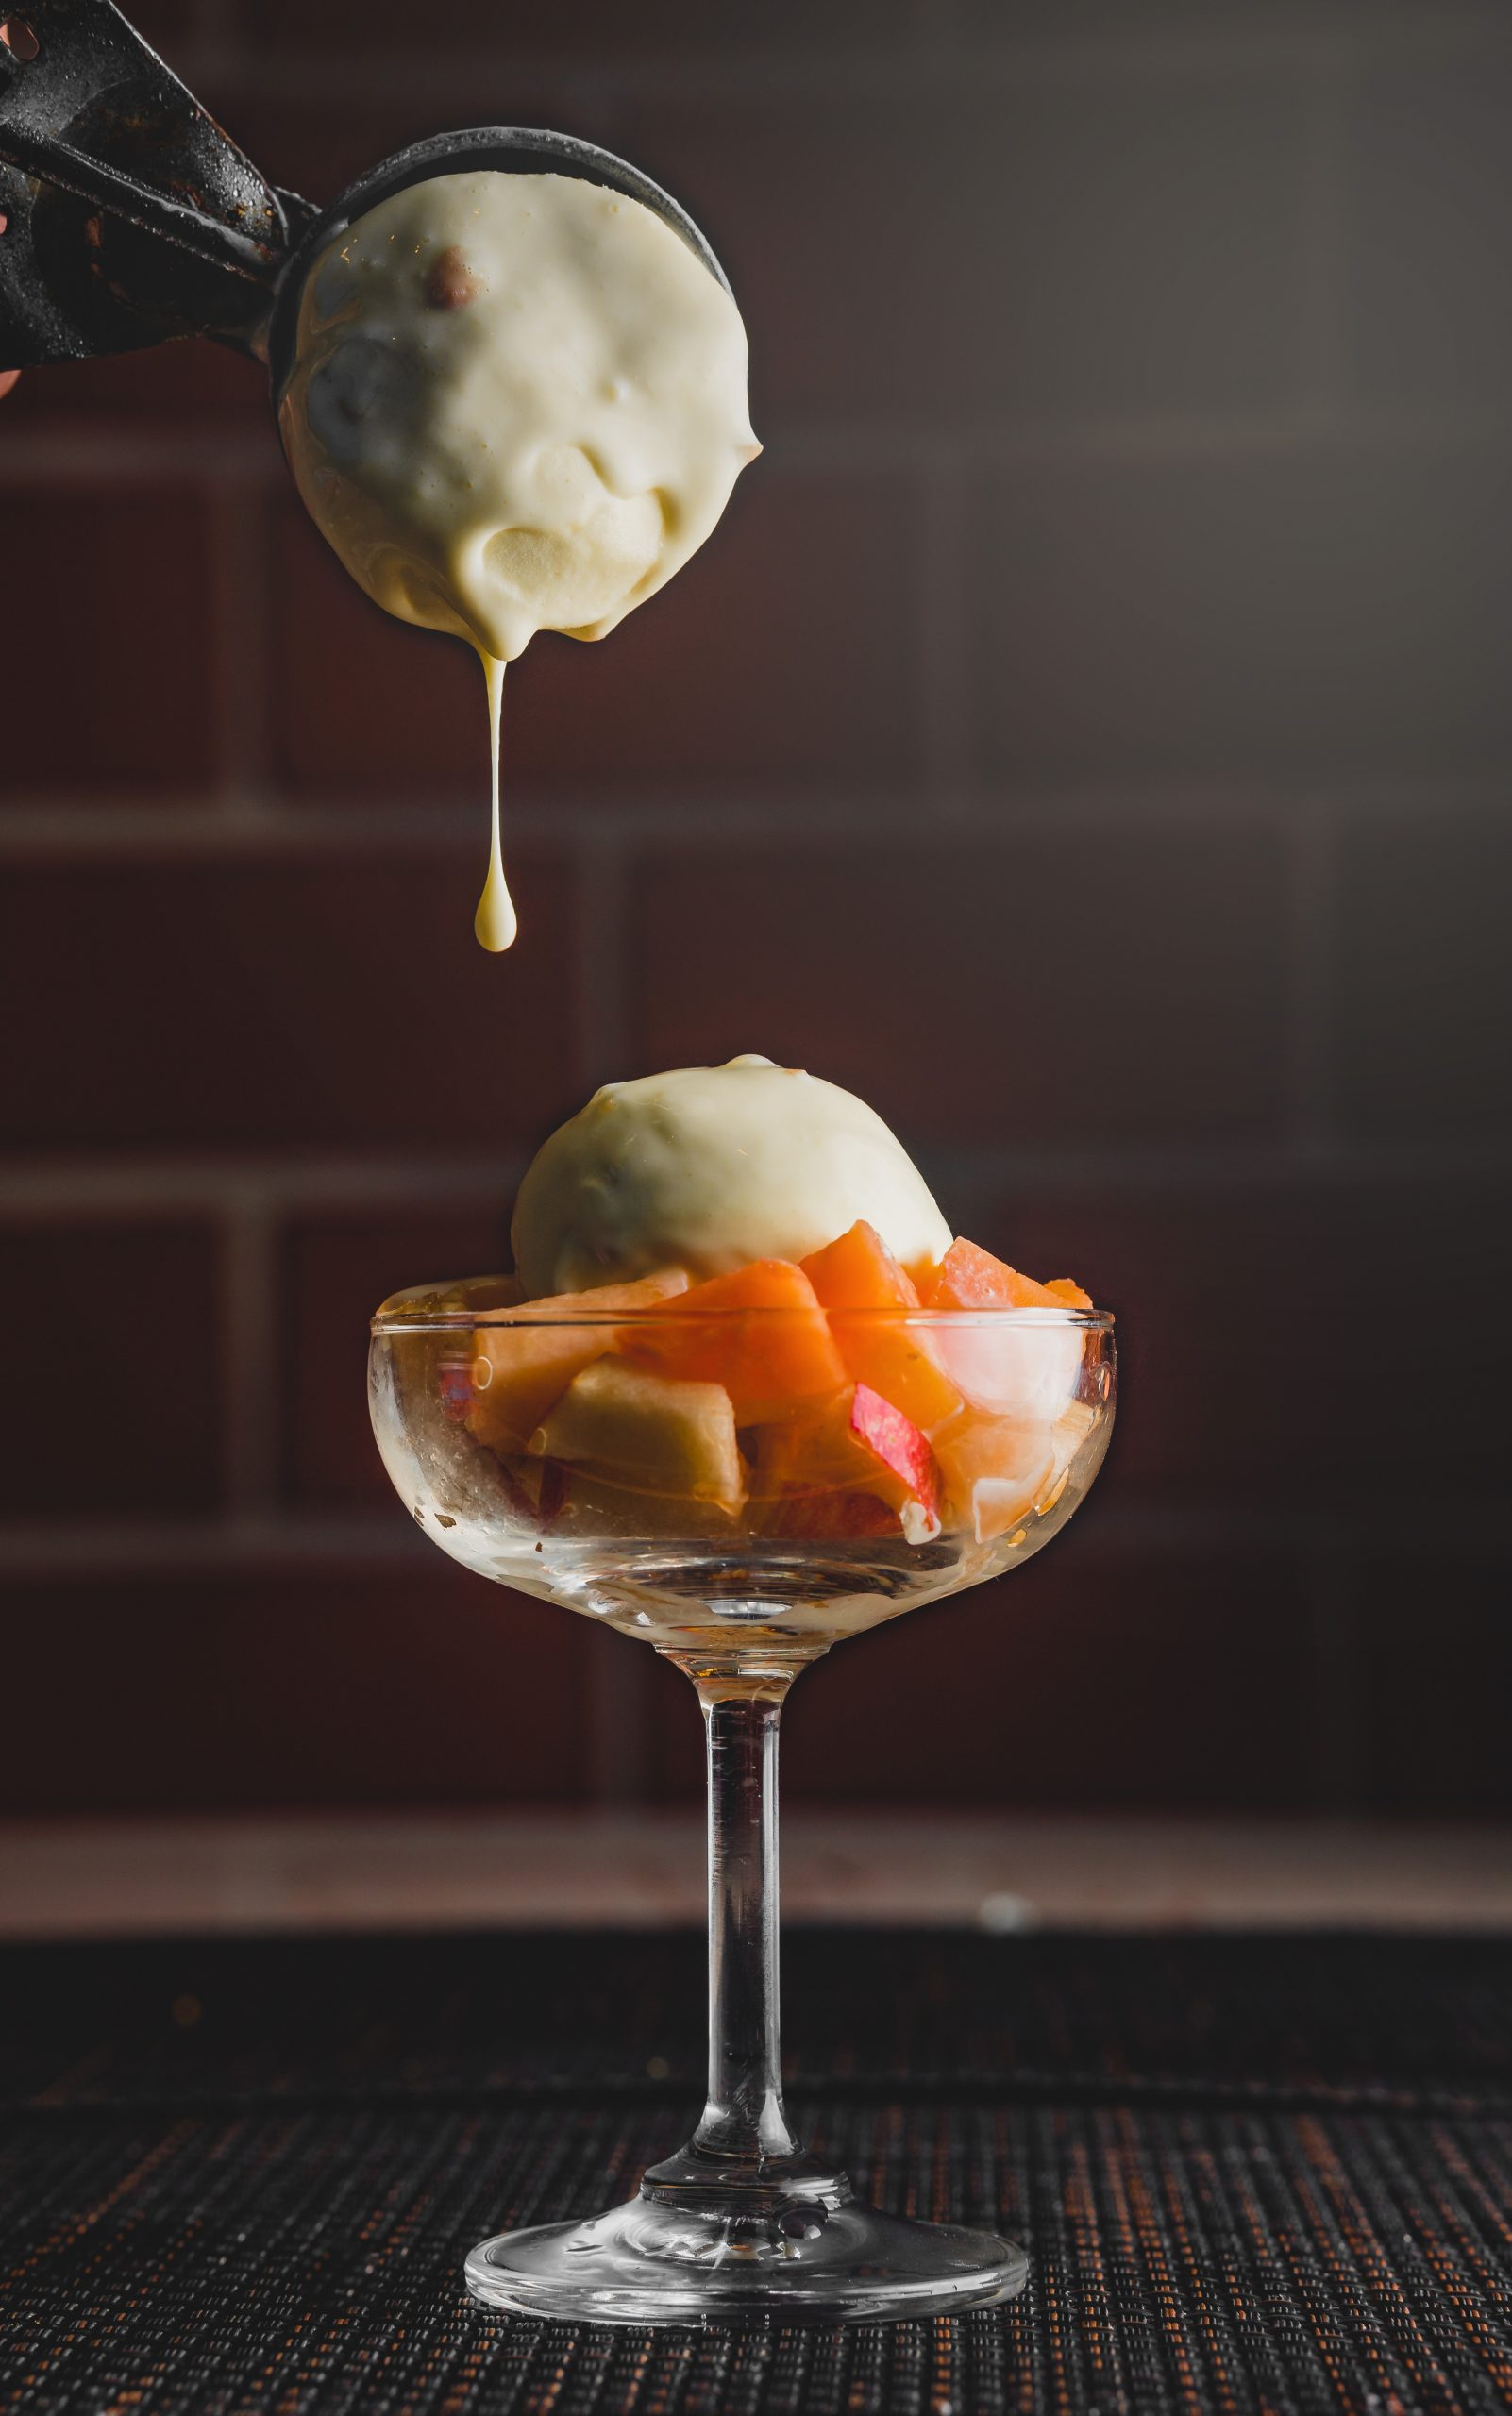 ice cream and fruit in glass